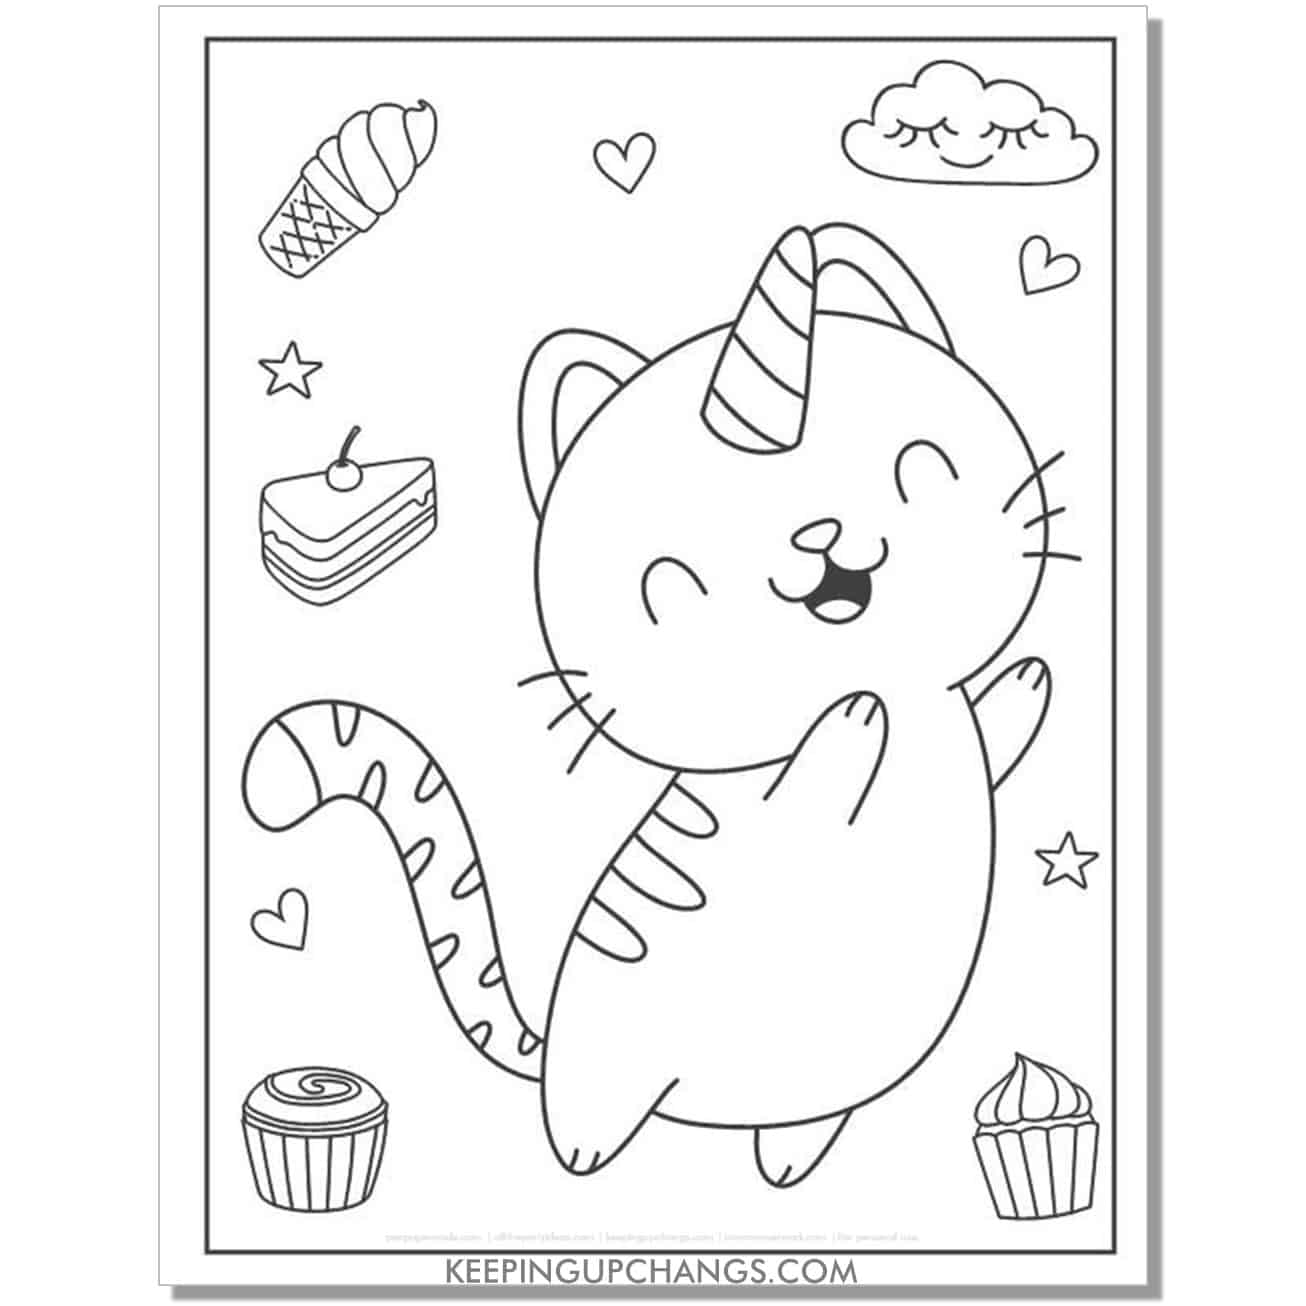 cat unicorn with ice cream, cake, cupcake coloring page.